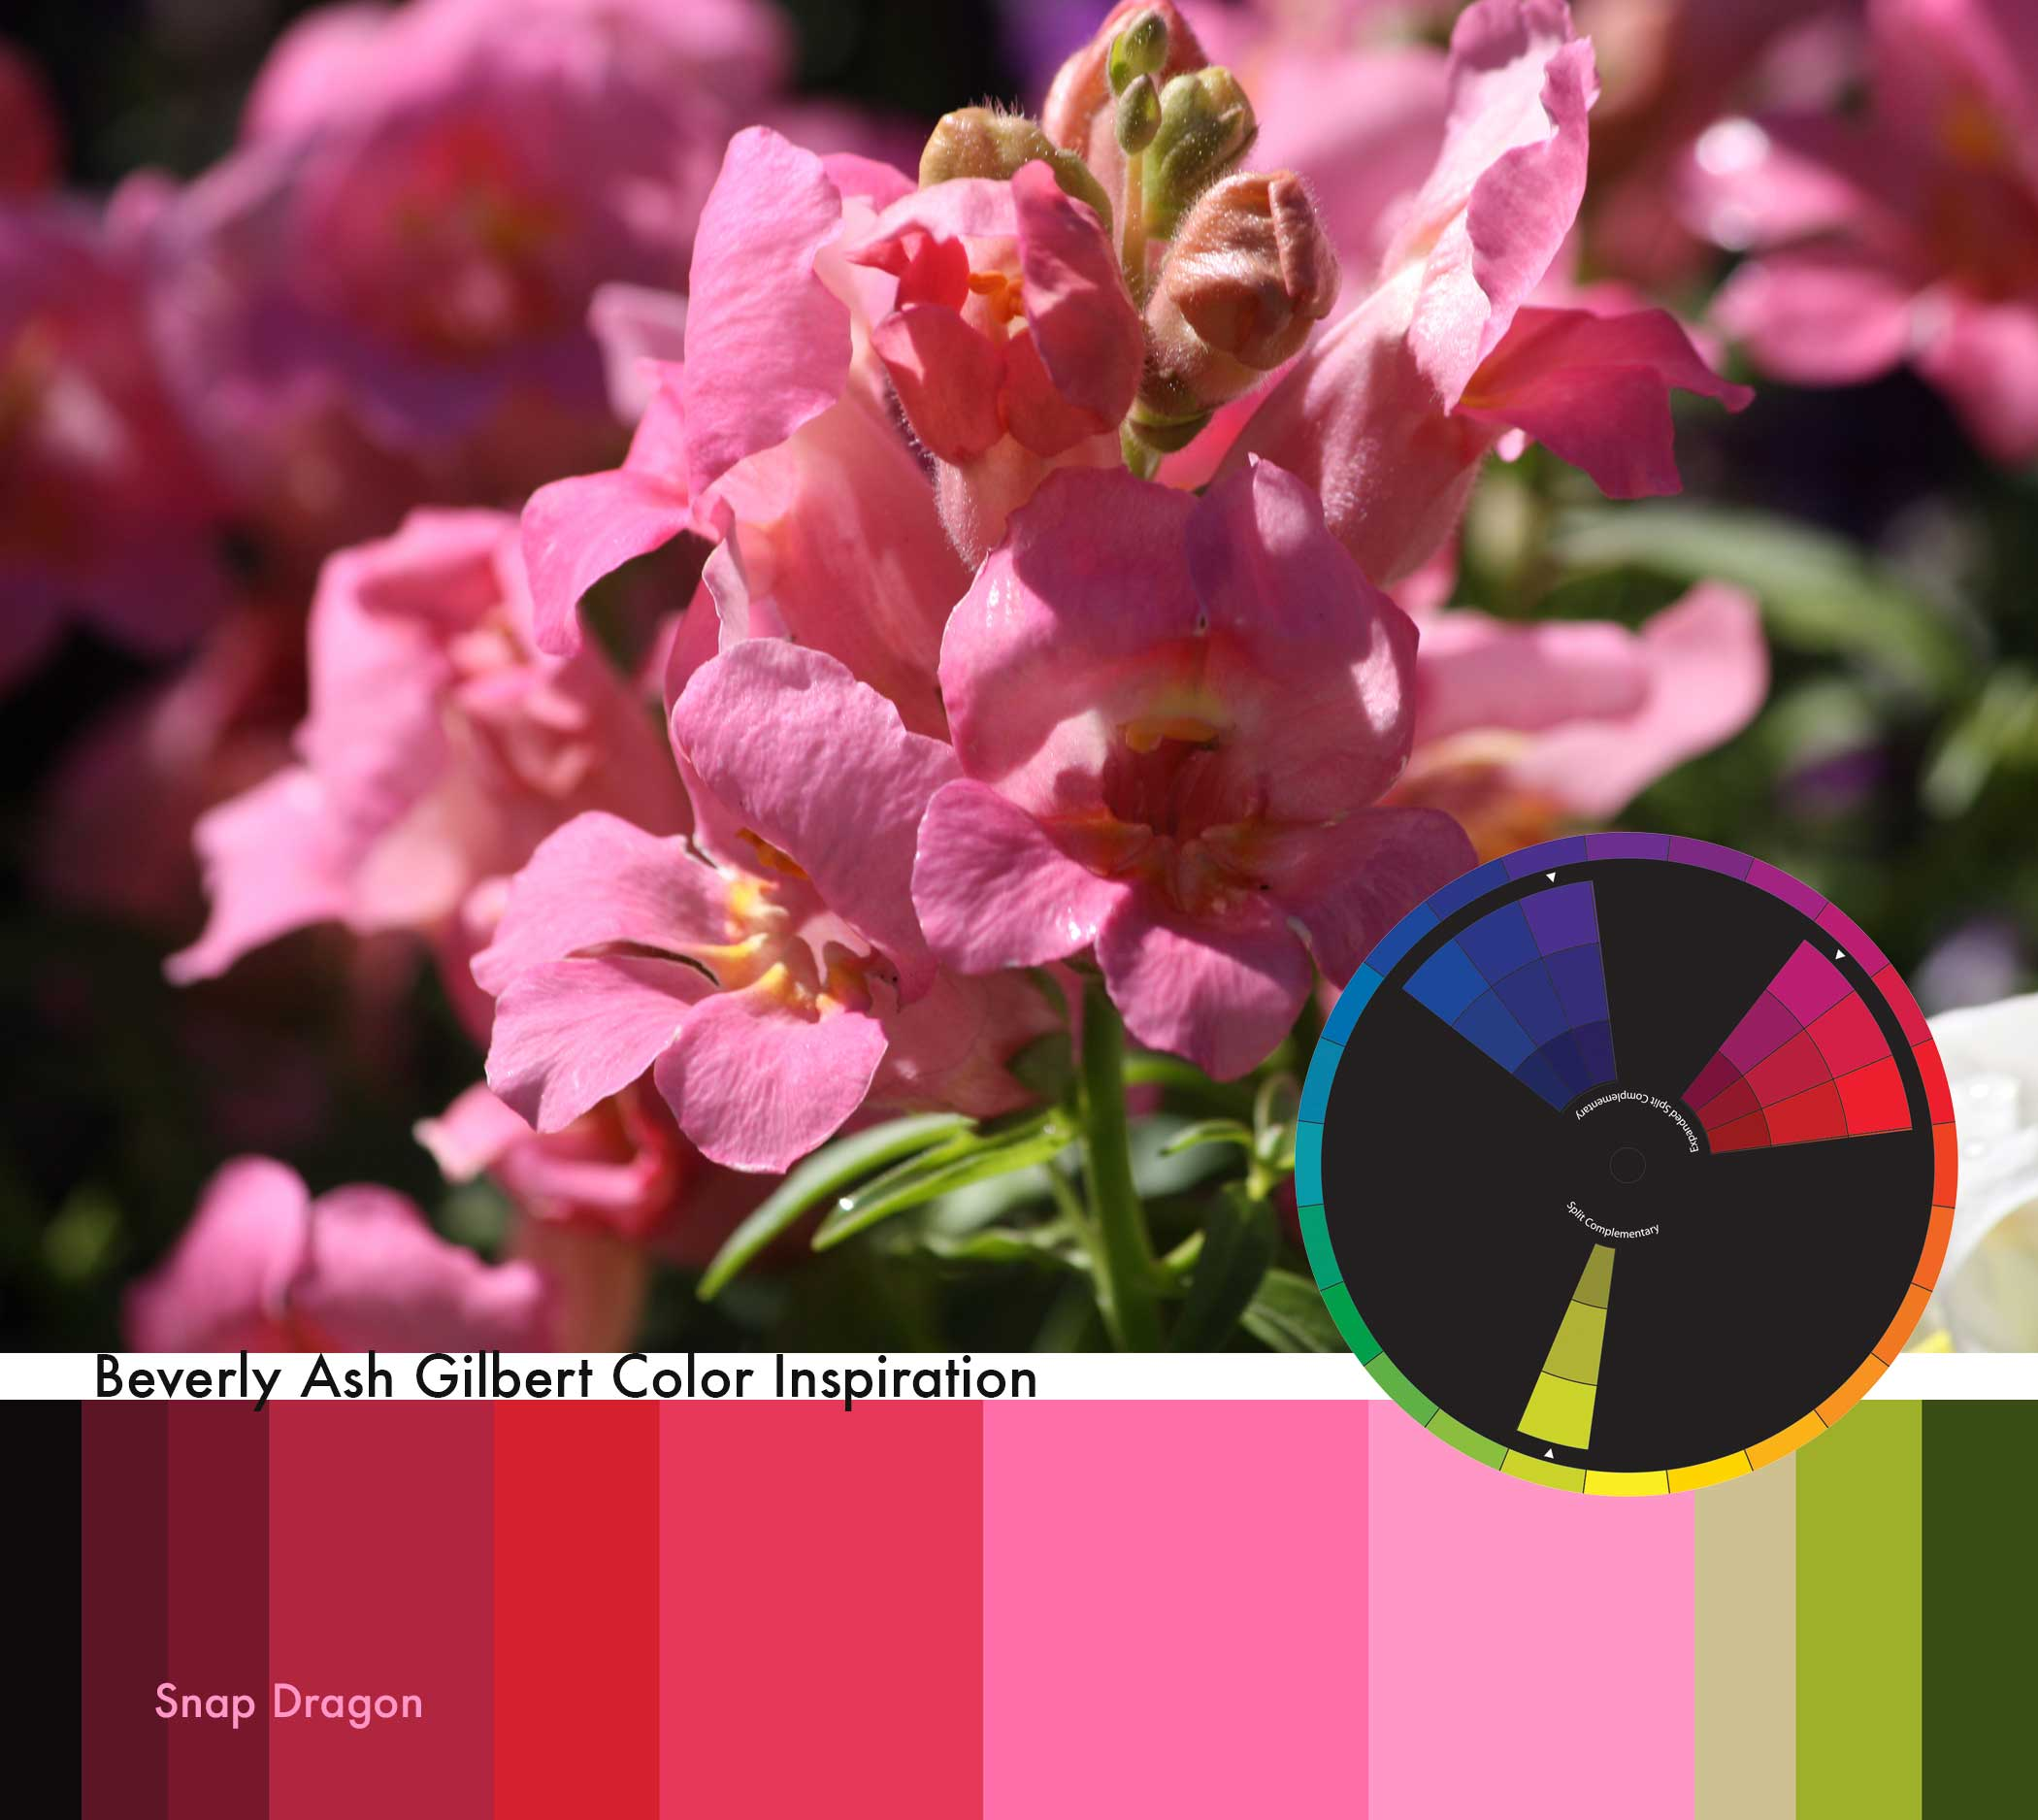 ColorInspiration_SnapDragon_small.jpg